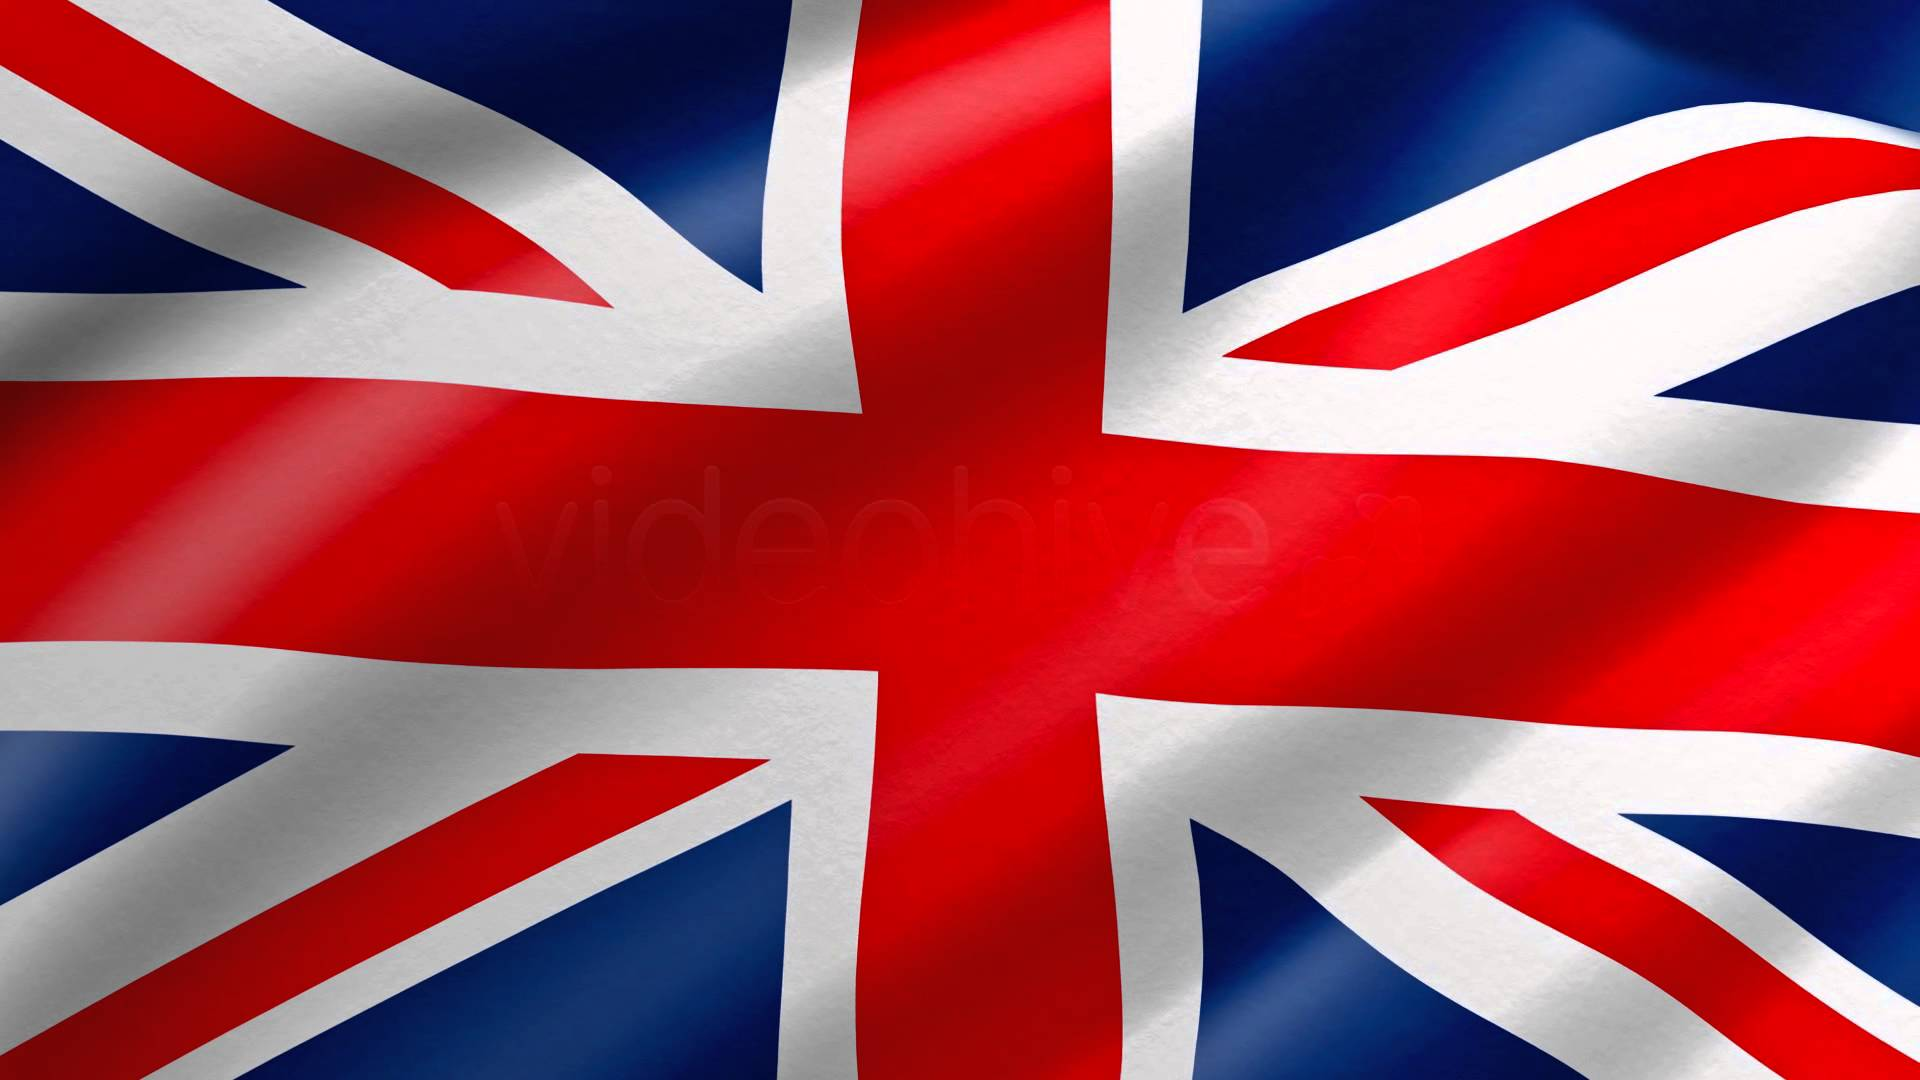 The Union Jack or The Union Flag? The Flag Institute